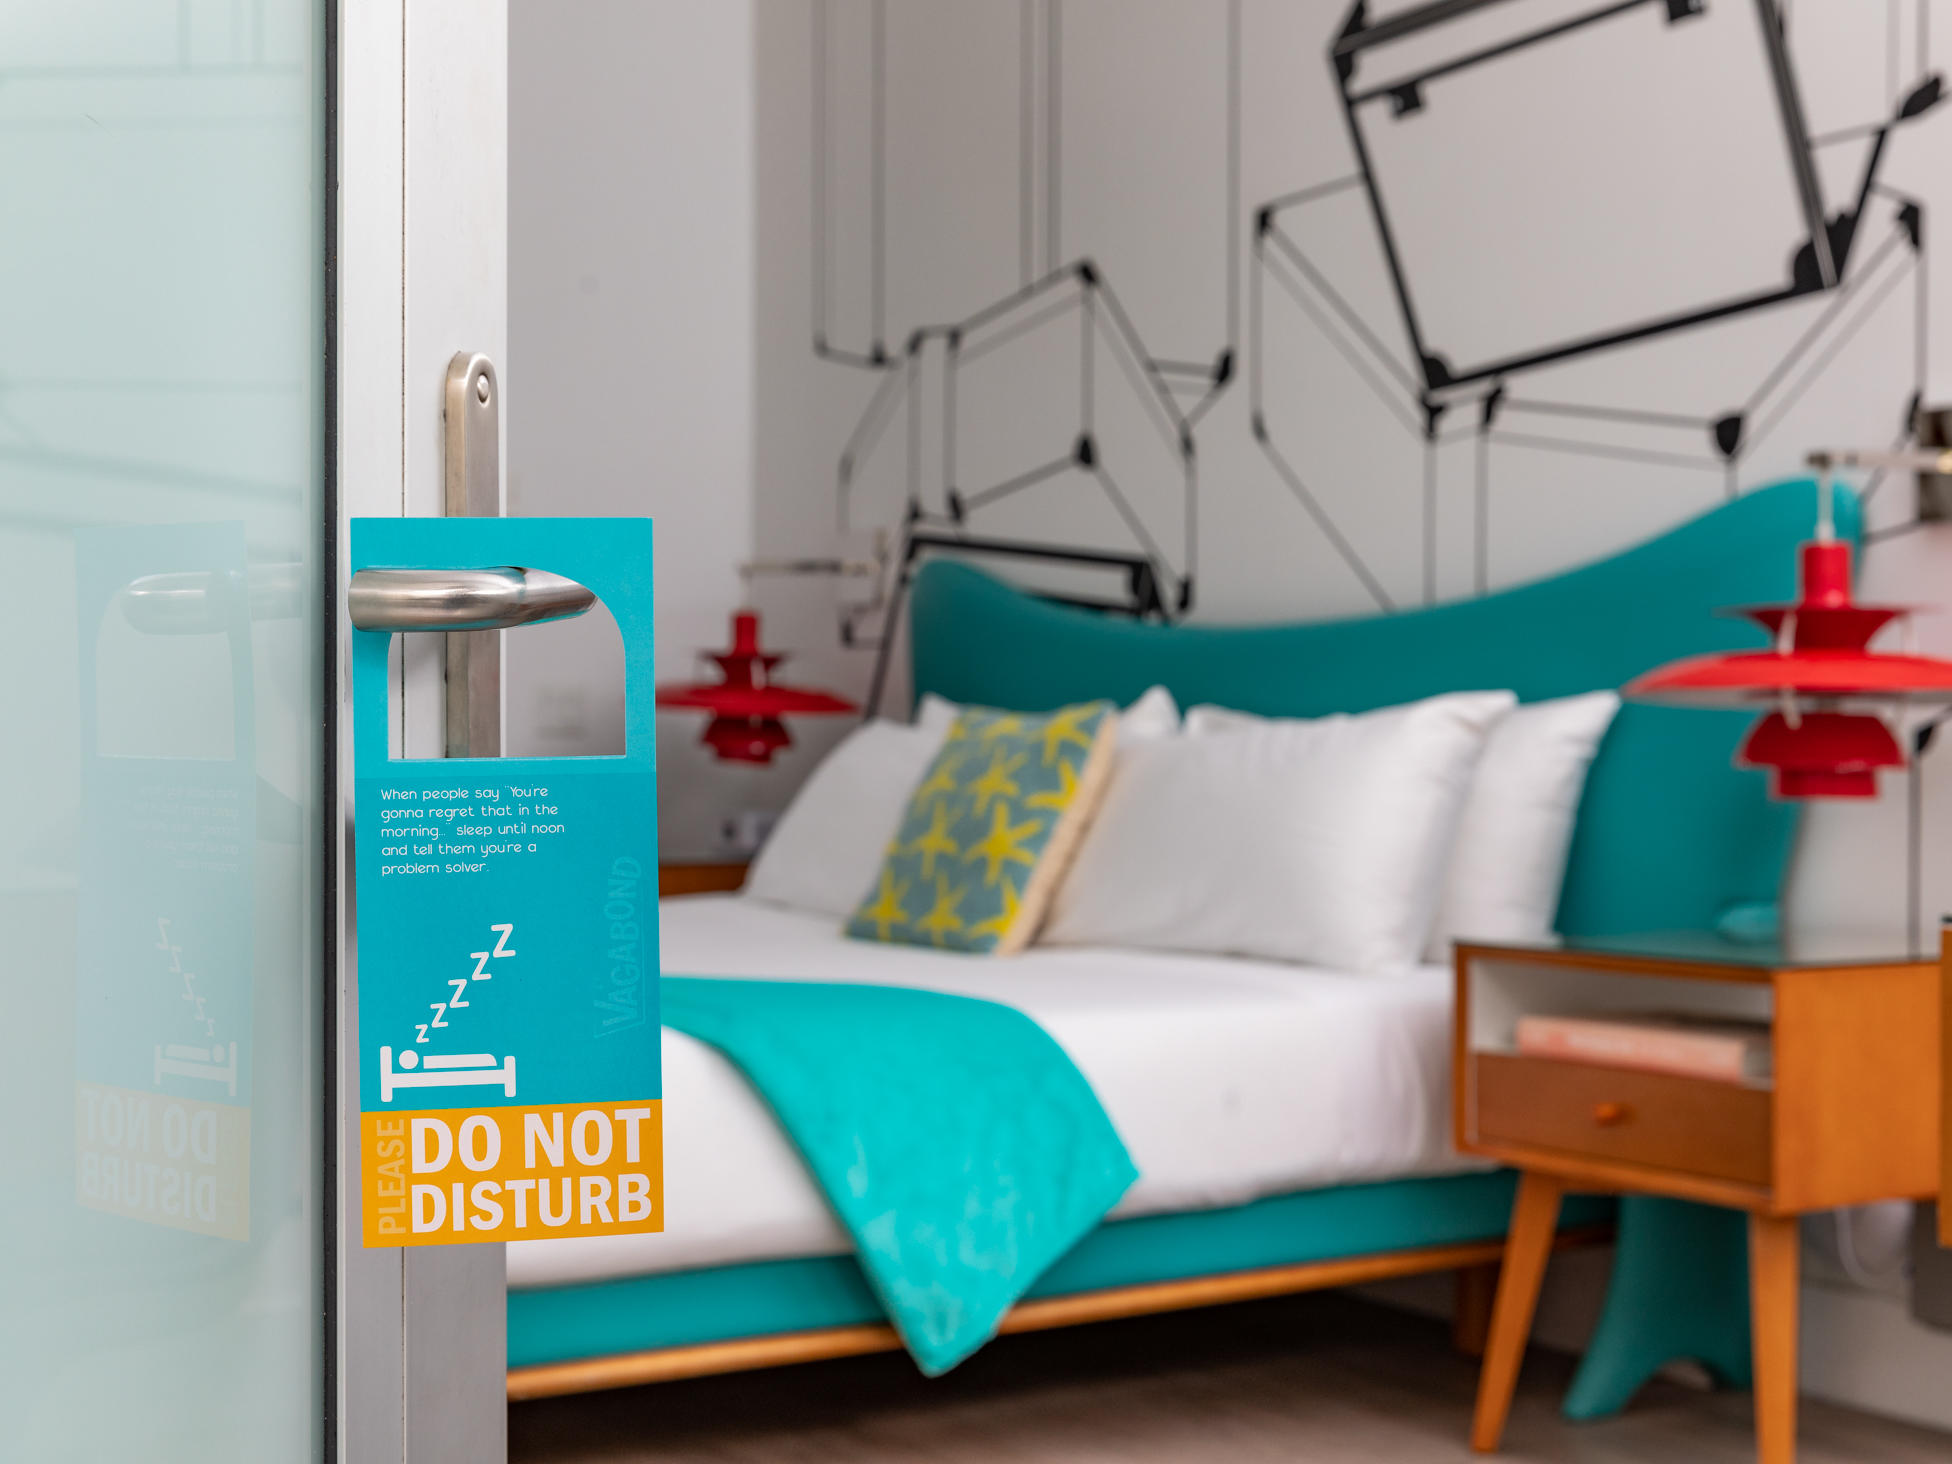 DO not disturb sign places on the door handle that is ajar with the King size bed in the background